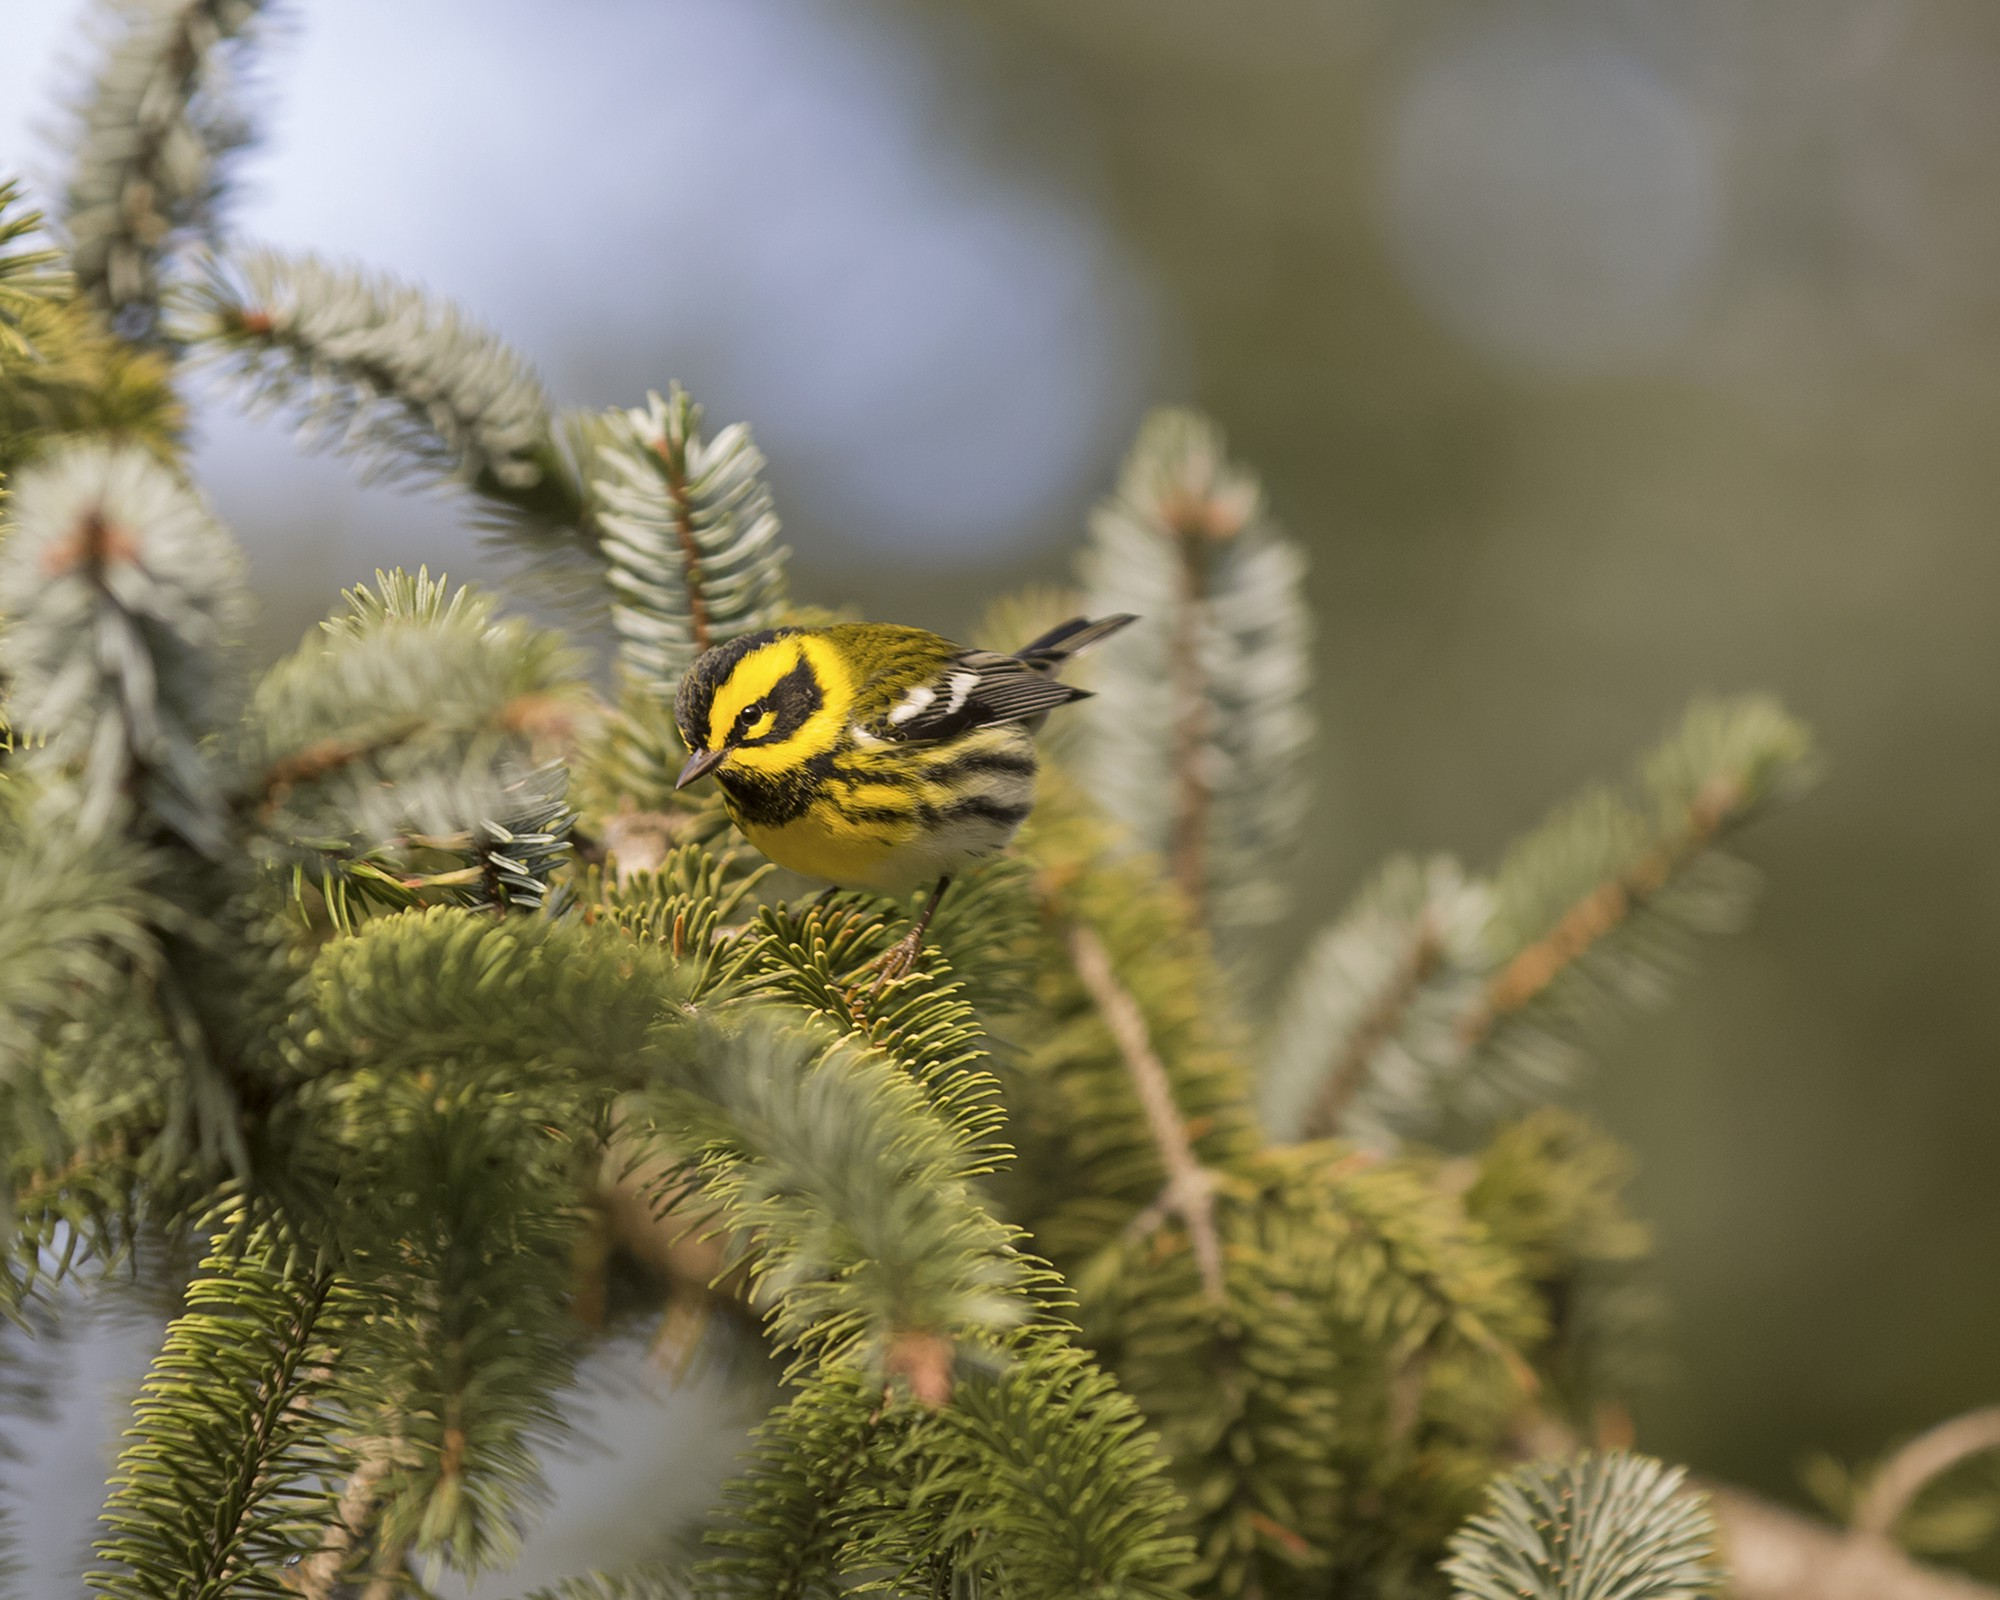 Male Townsend's warbler on a conifer branch